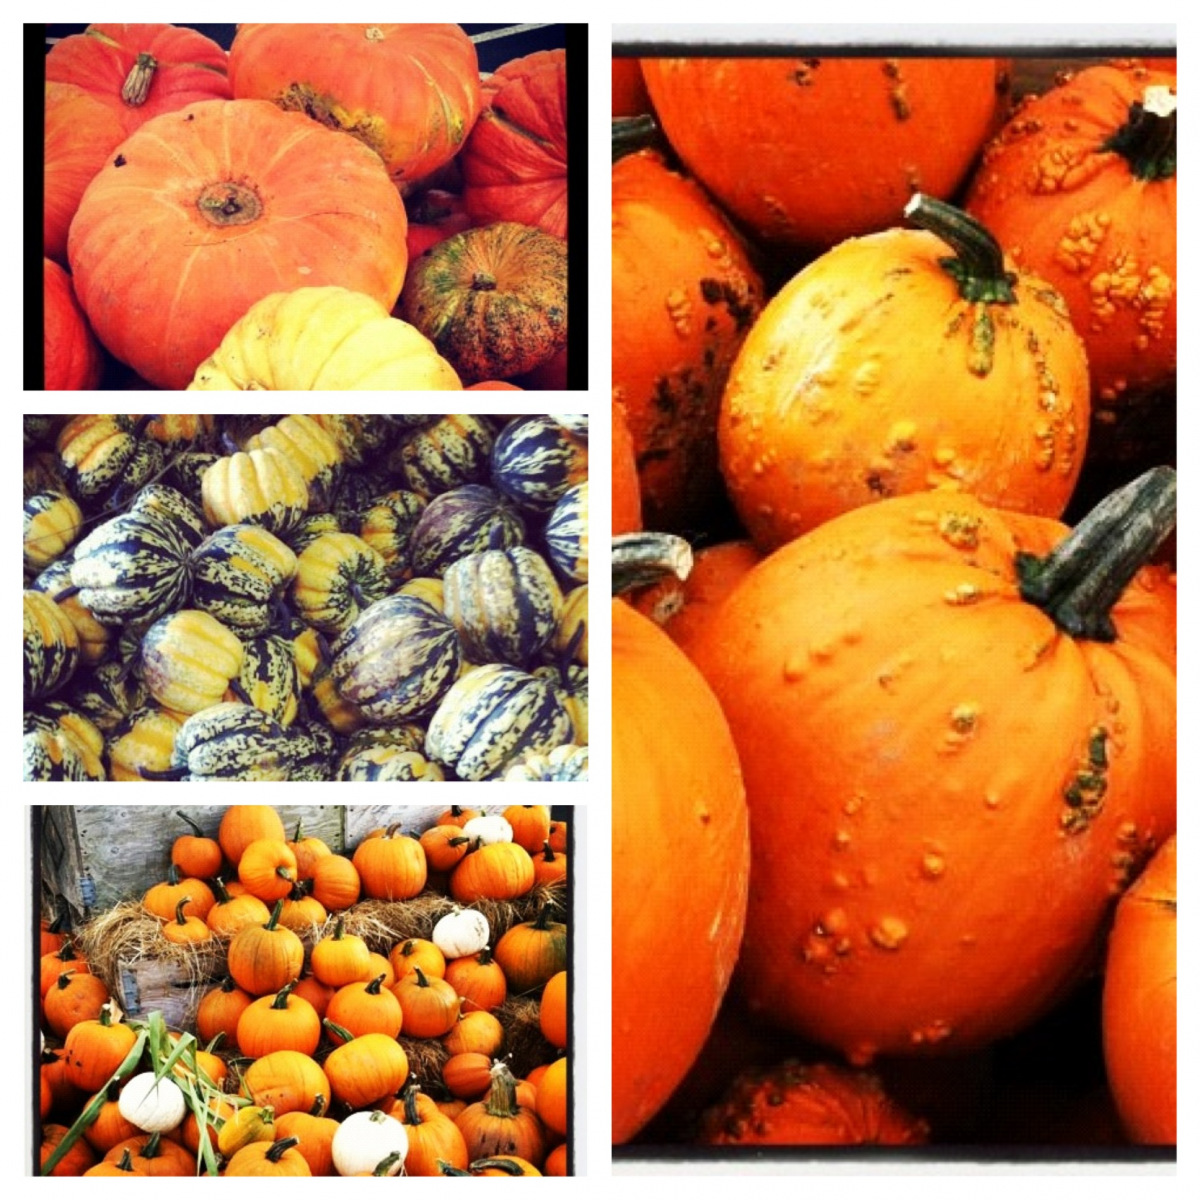 squash-and-pumpkins